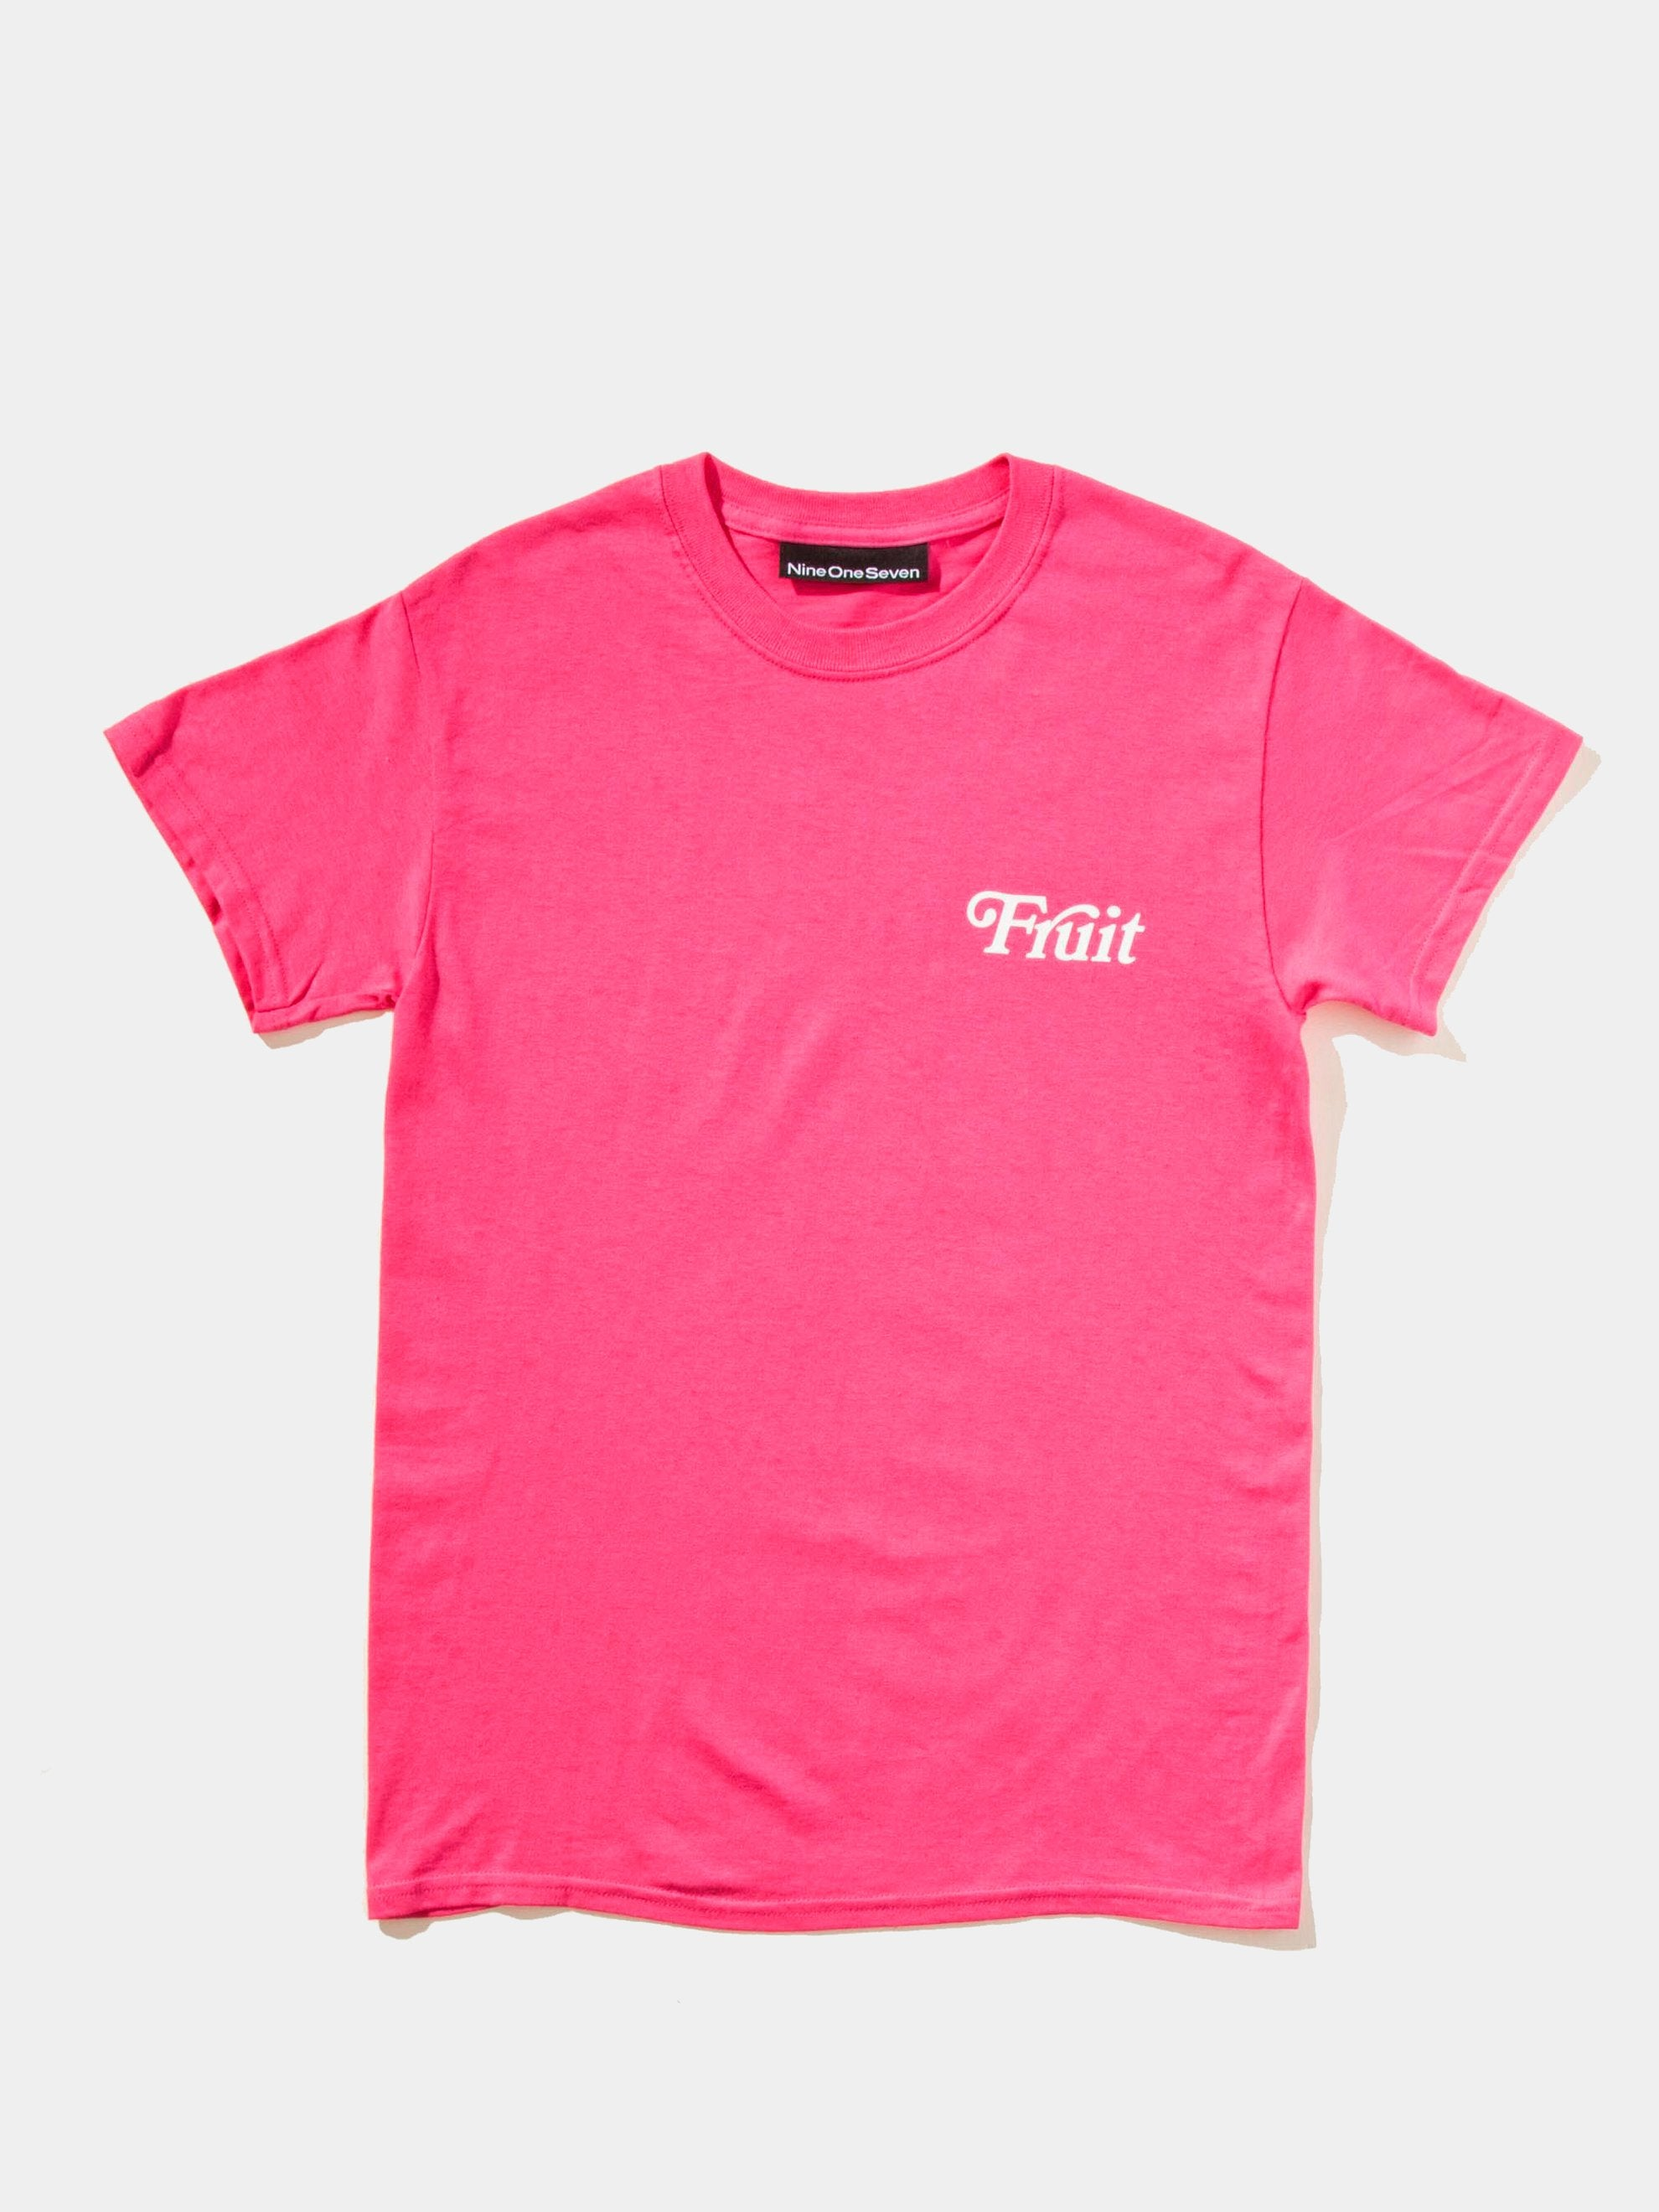 Pink Fruit T-Shirt 1